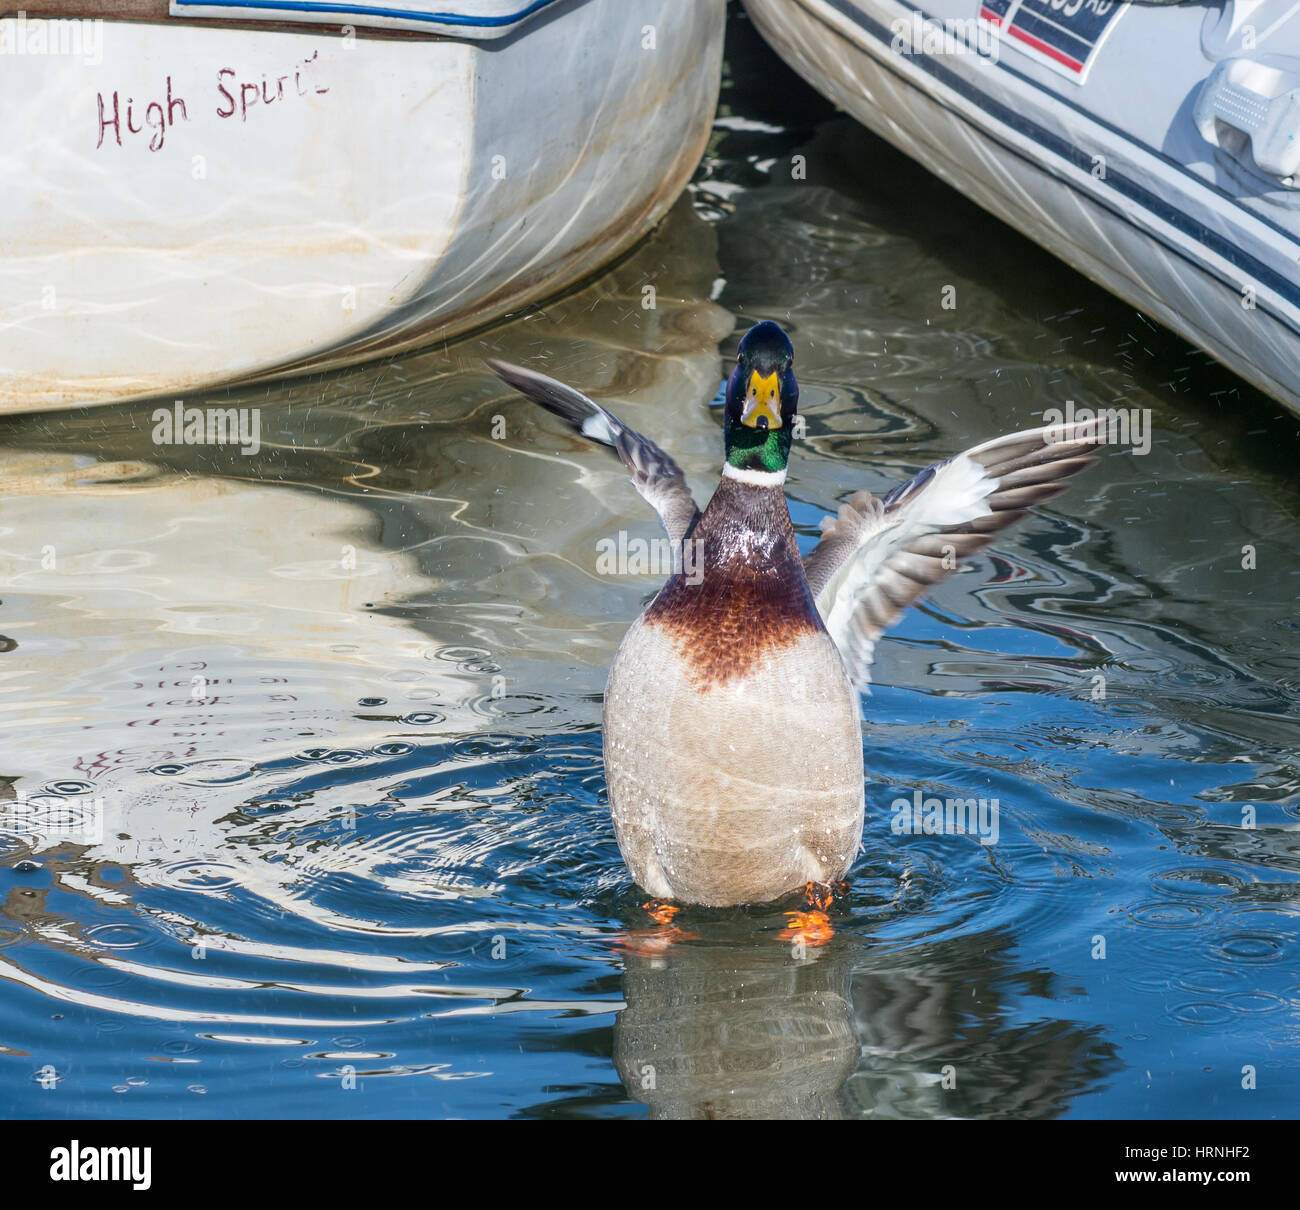 A high spirited Mallard duck flapping its wings and splashing in the sea water among small boats. Stock Photo